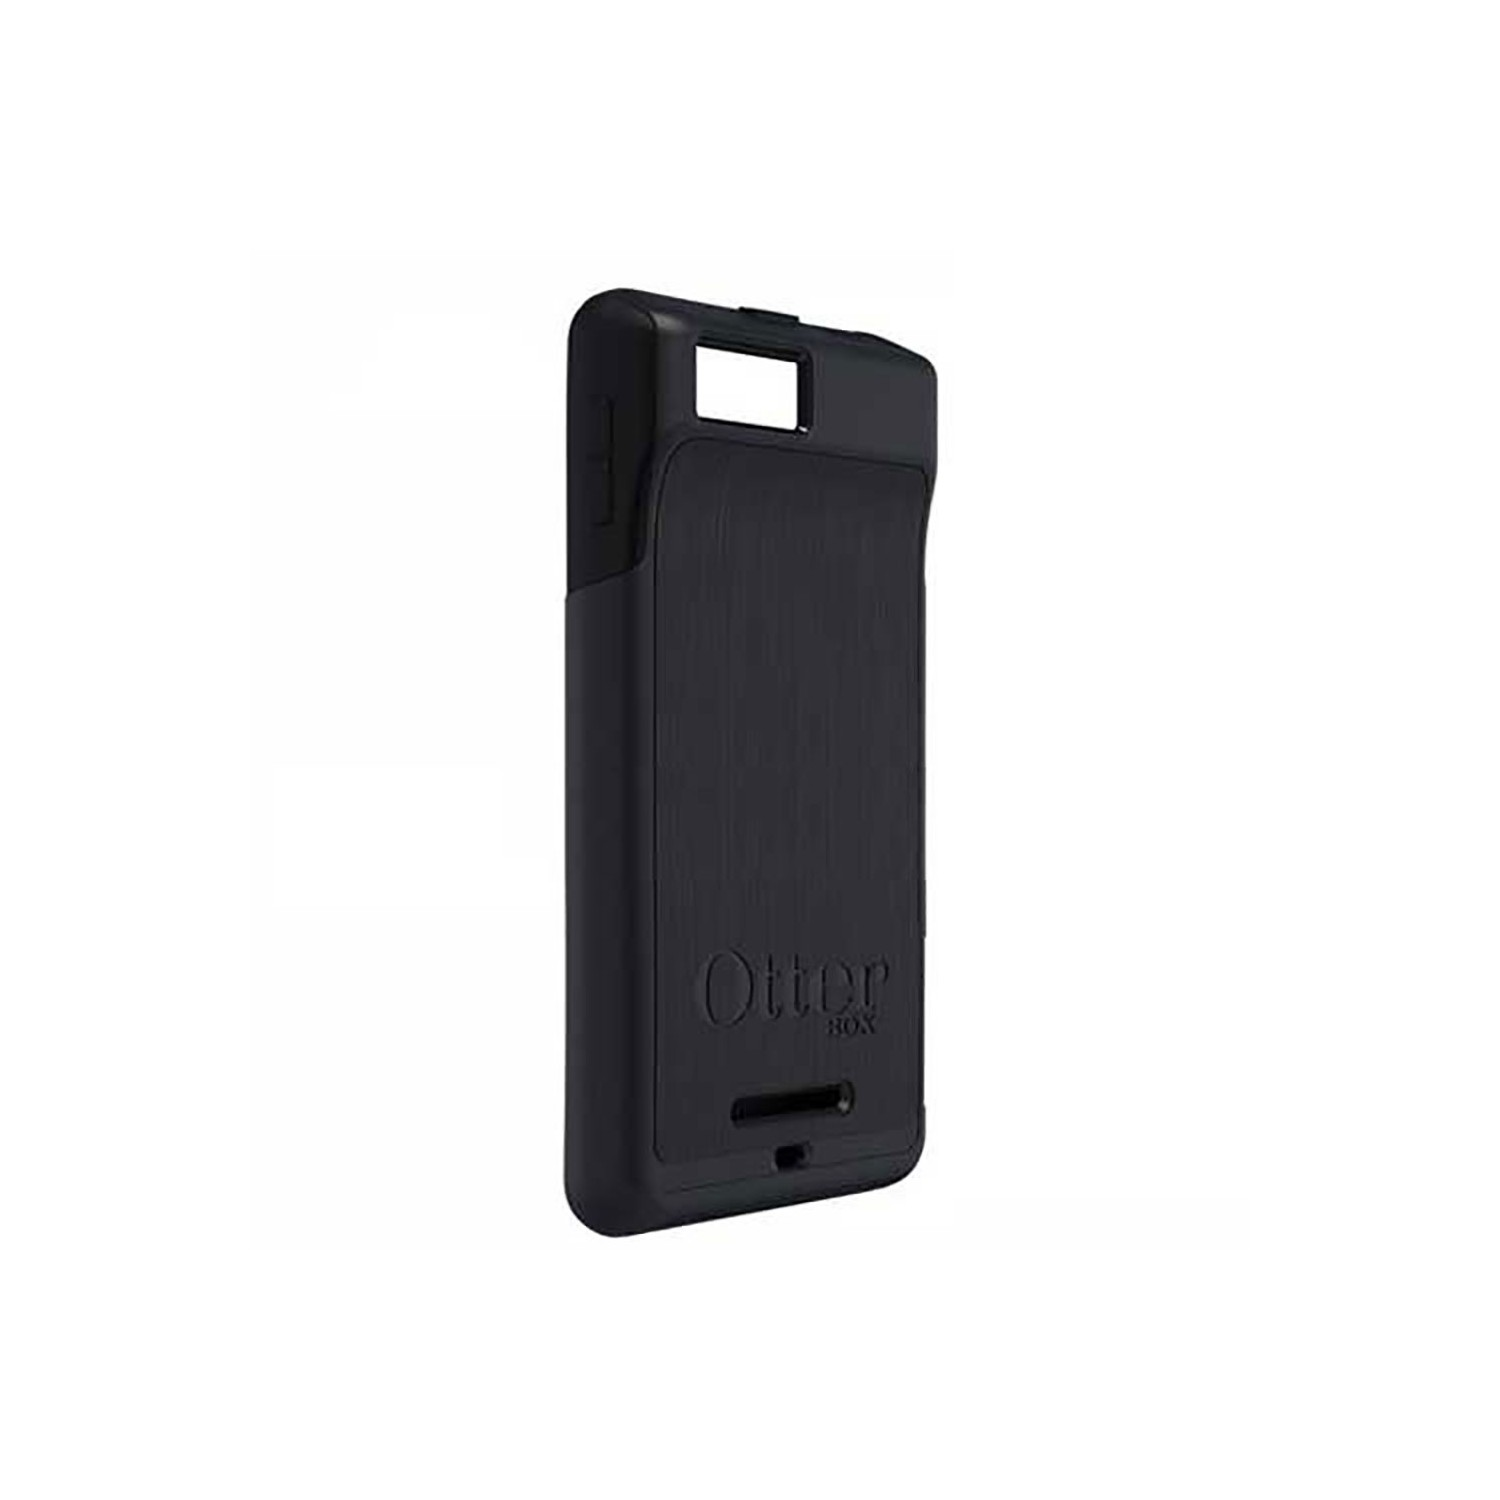 Case - Otterbox Commuter for Motorola Droid X2